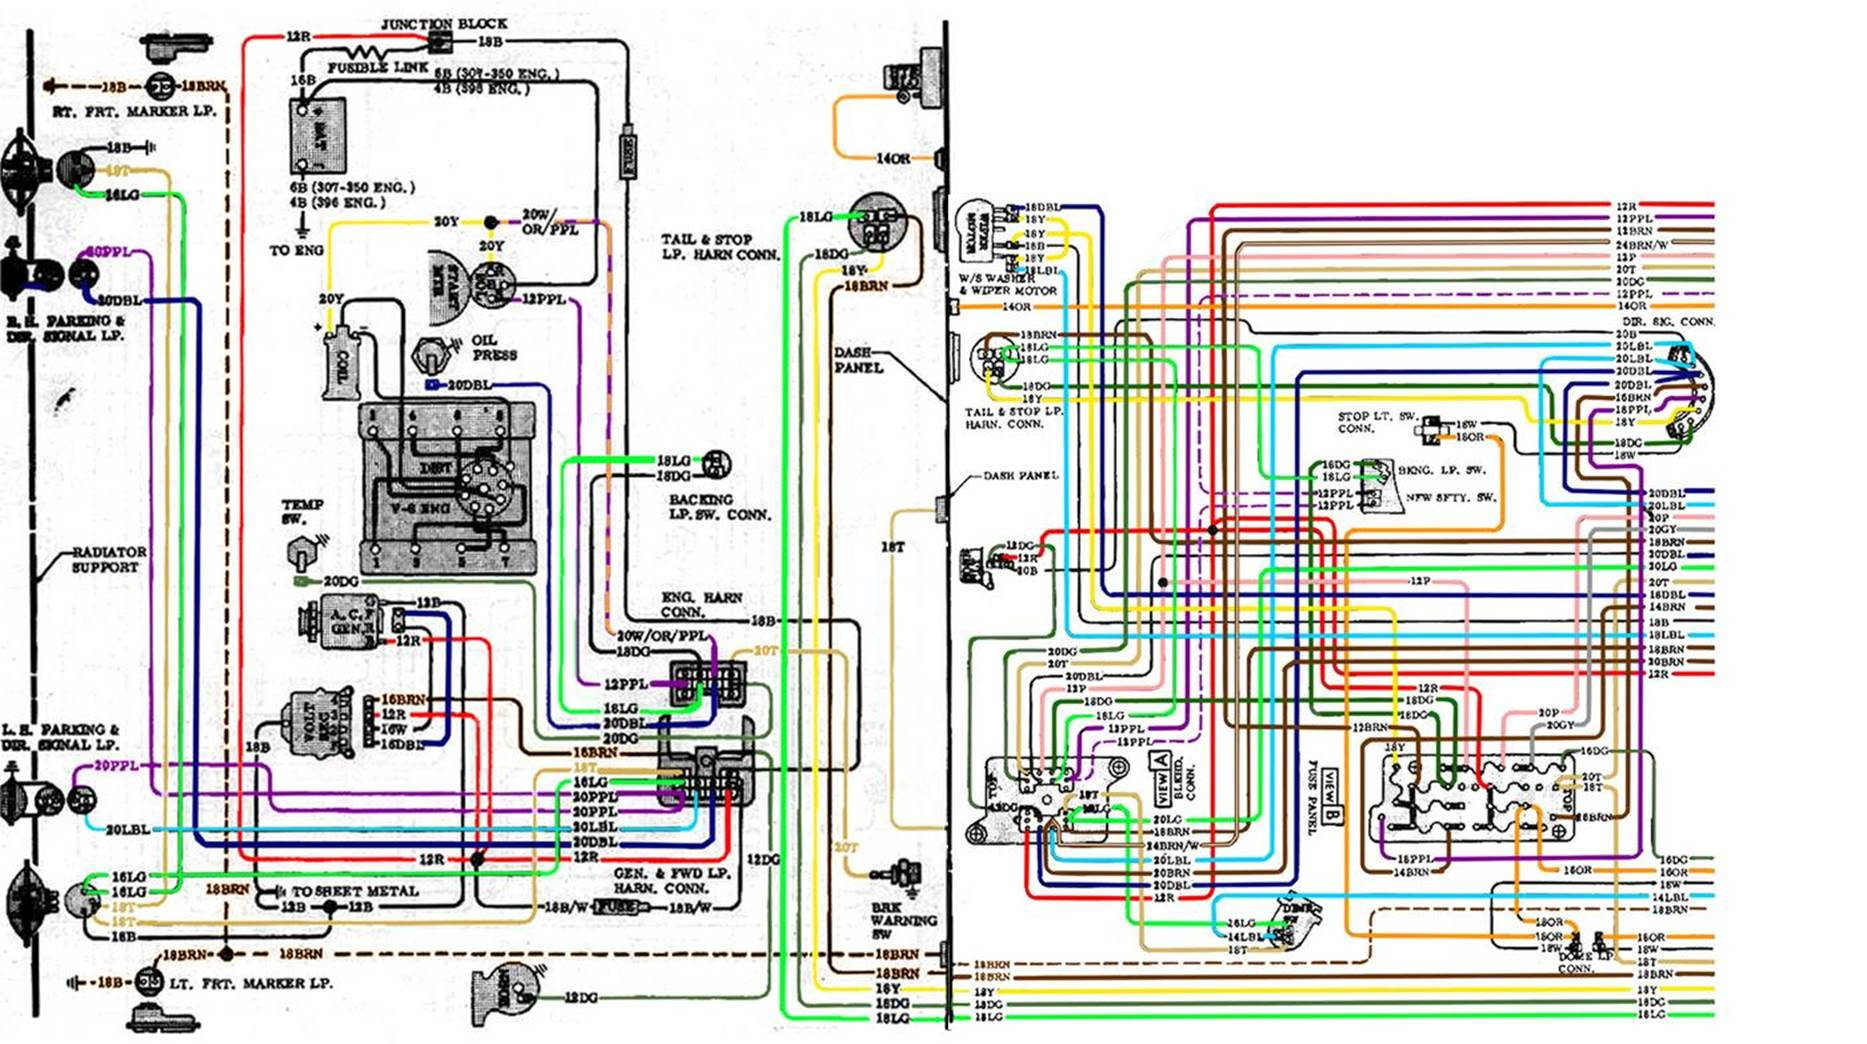 image002 67 72 chevy wiring diagram 1965 chevy truck wiring harness at alyssarenee.co